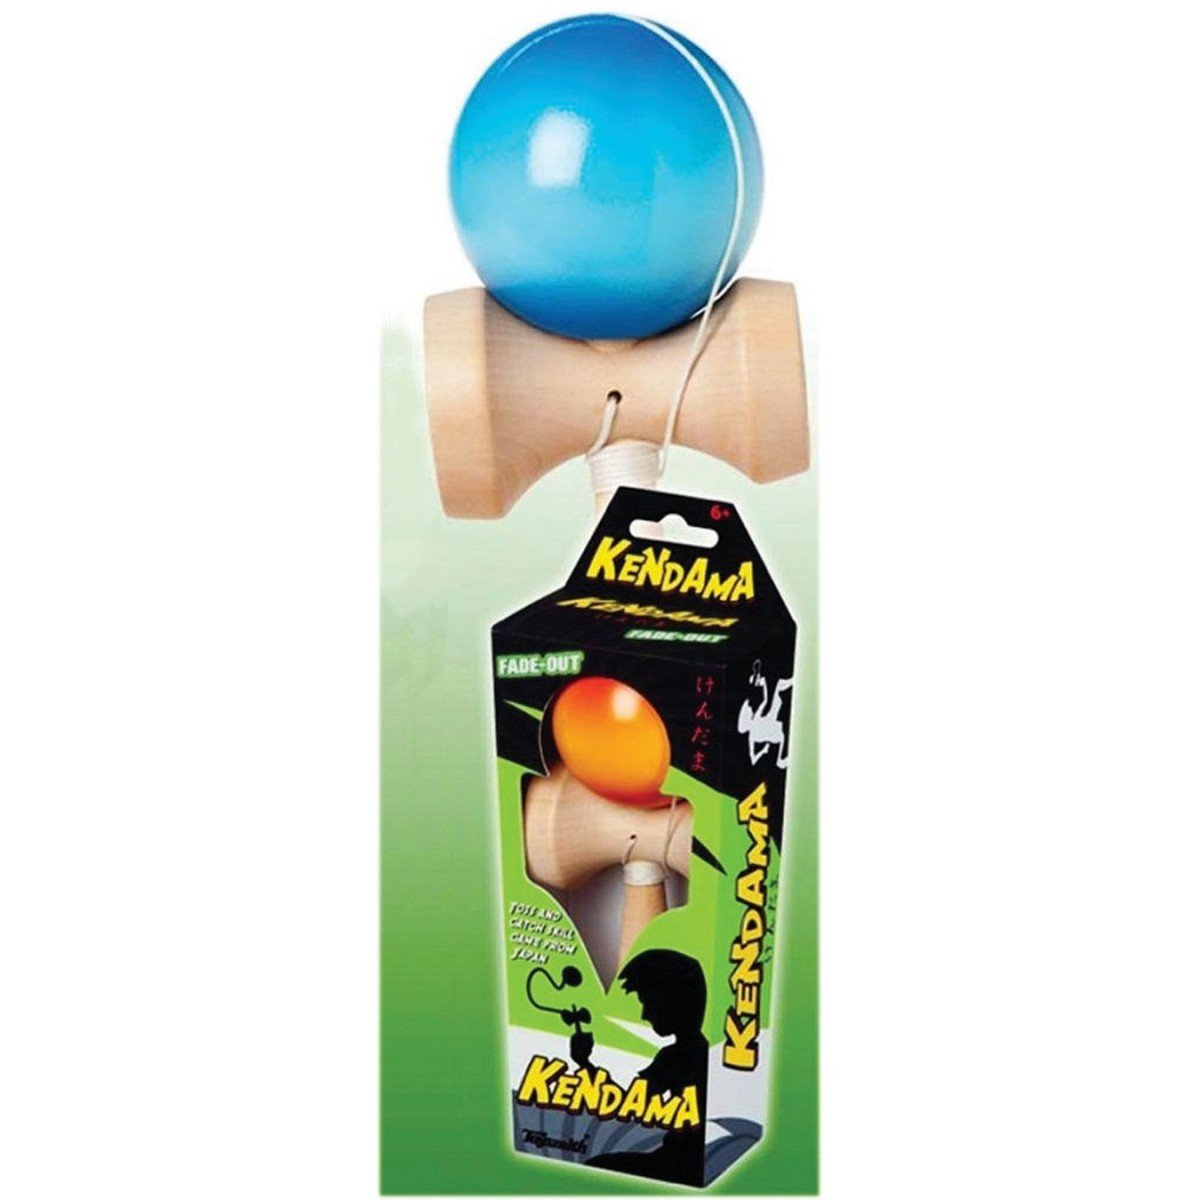 Toysmith Kendama Fade-Out Toy, colors may vary by Toysmith TSM2014